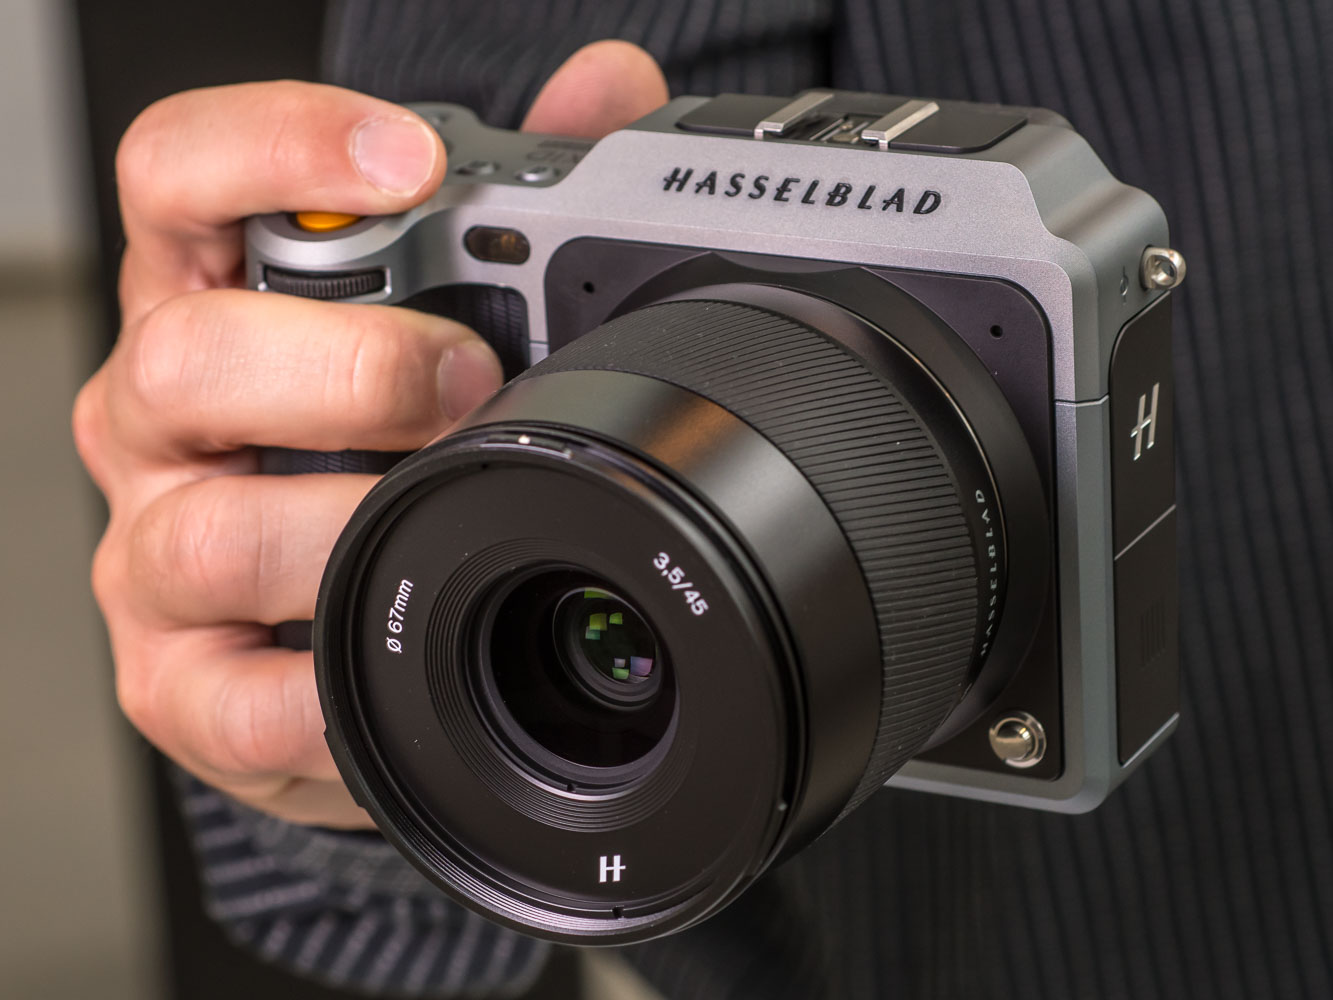 Hands-on with Hasselblad X1D: Digital Photography Review